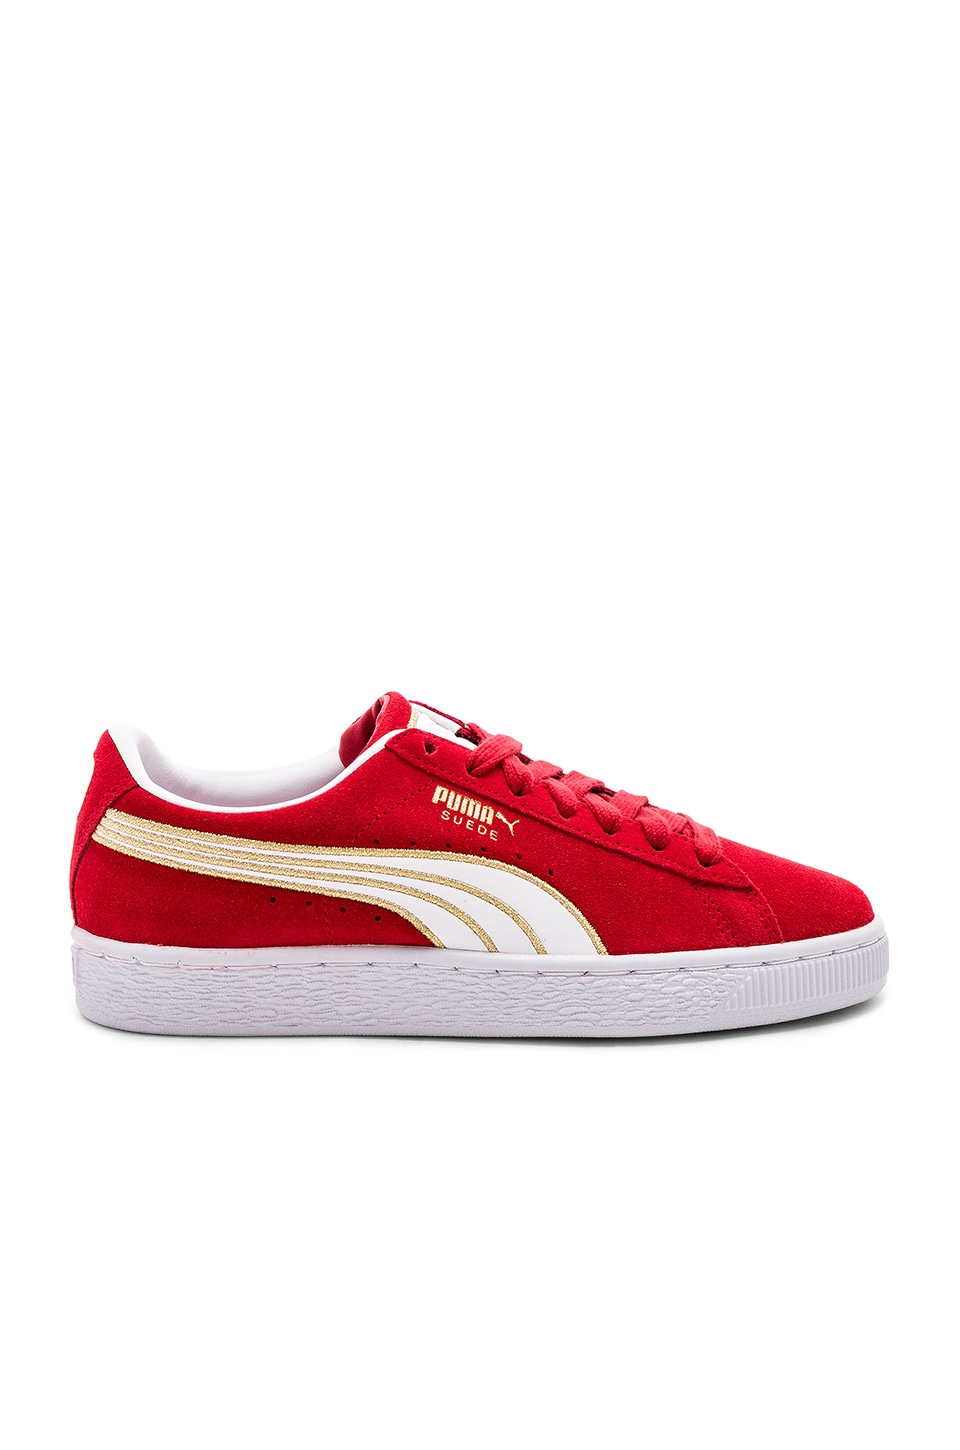 sports shoes 445cd 8cce0 Puma Suede Varsity Sneaker in Ribbon Red & Puma White | REVOLVE